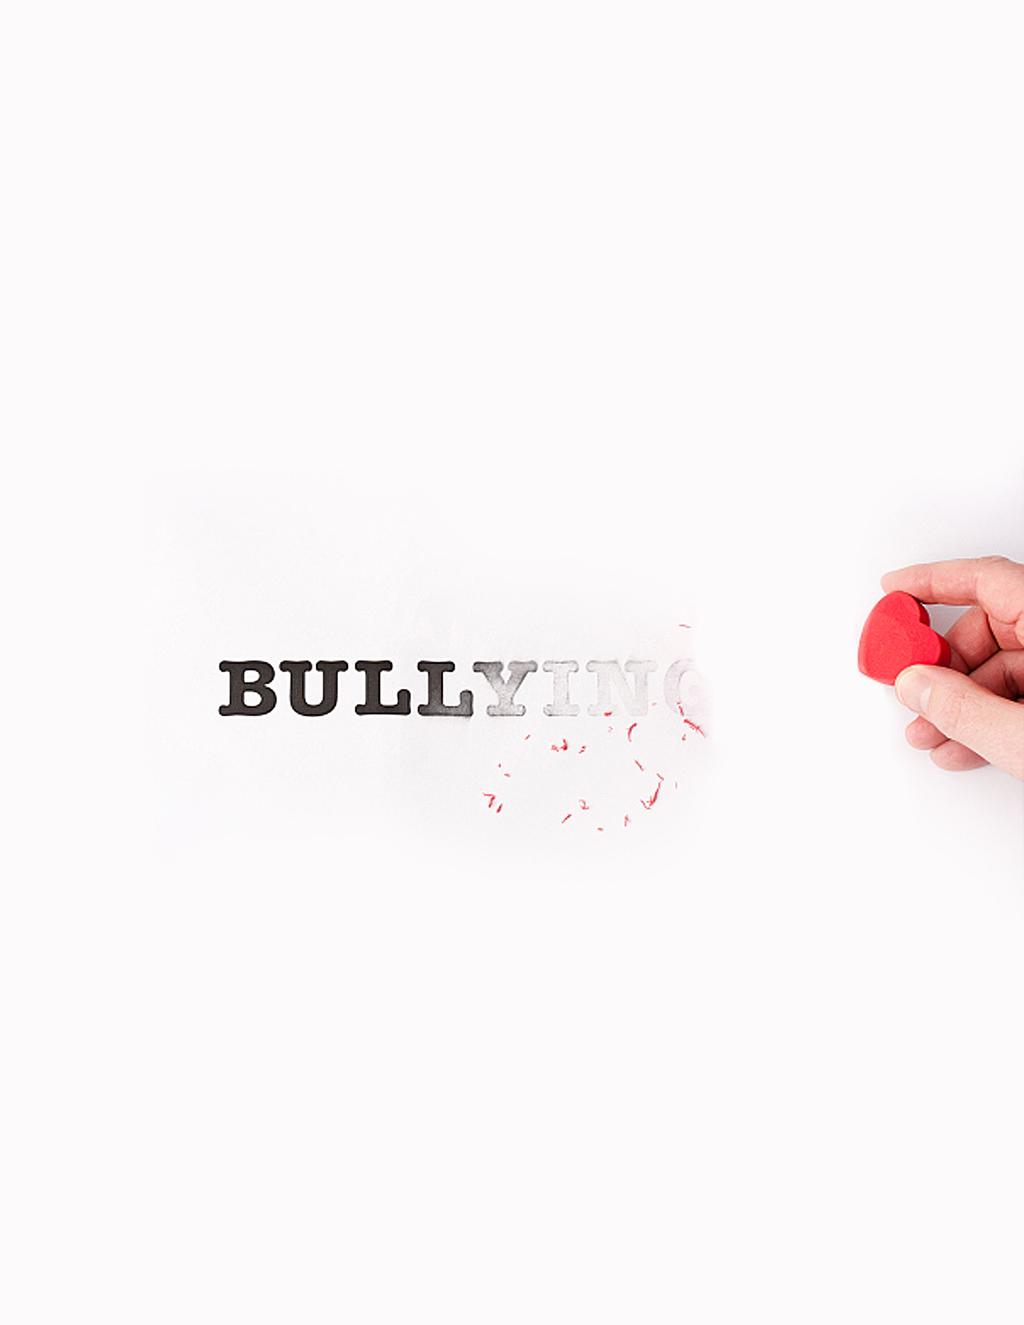 stop bullying There s dealing with bullies and then there s the issue of not becoming one when you re the captain and must lead